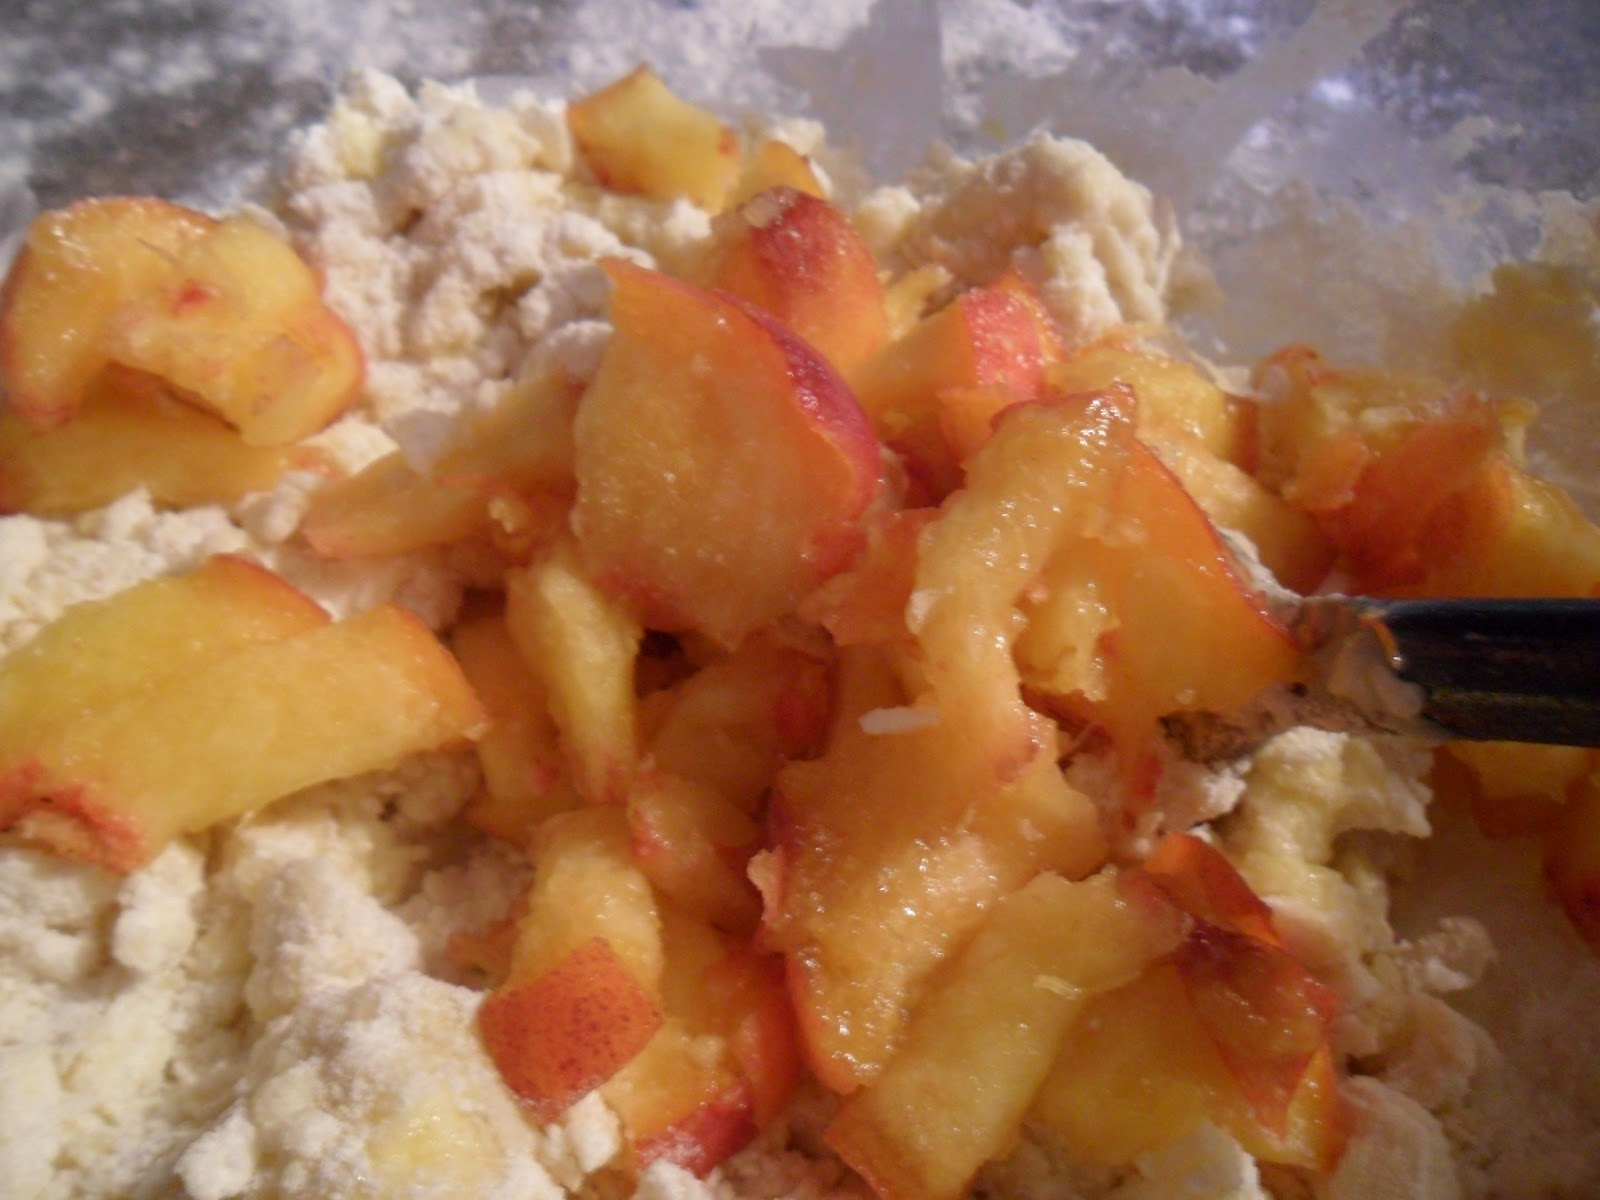 of each scone pressing peach into scone lightly 8 bake at 425 for 12 ...